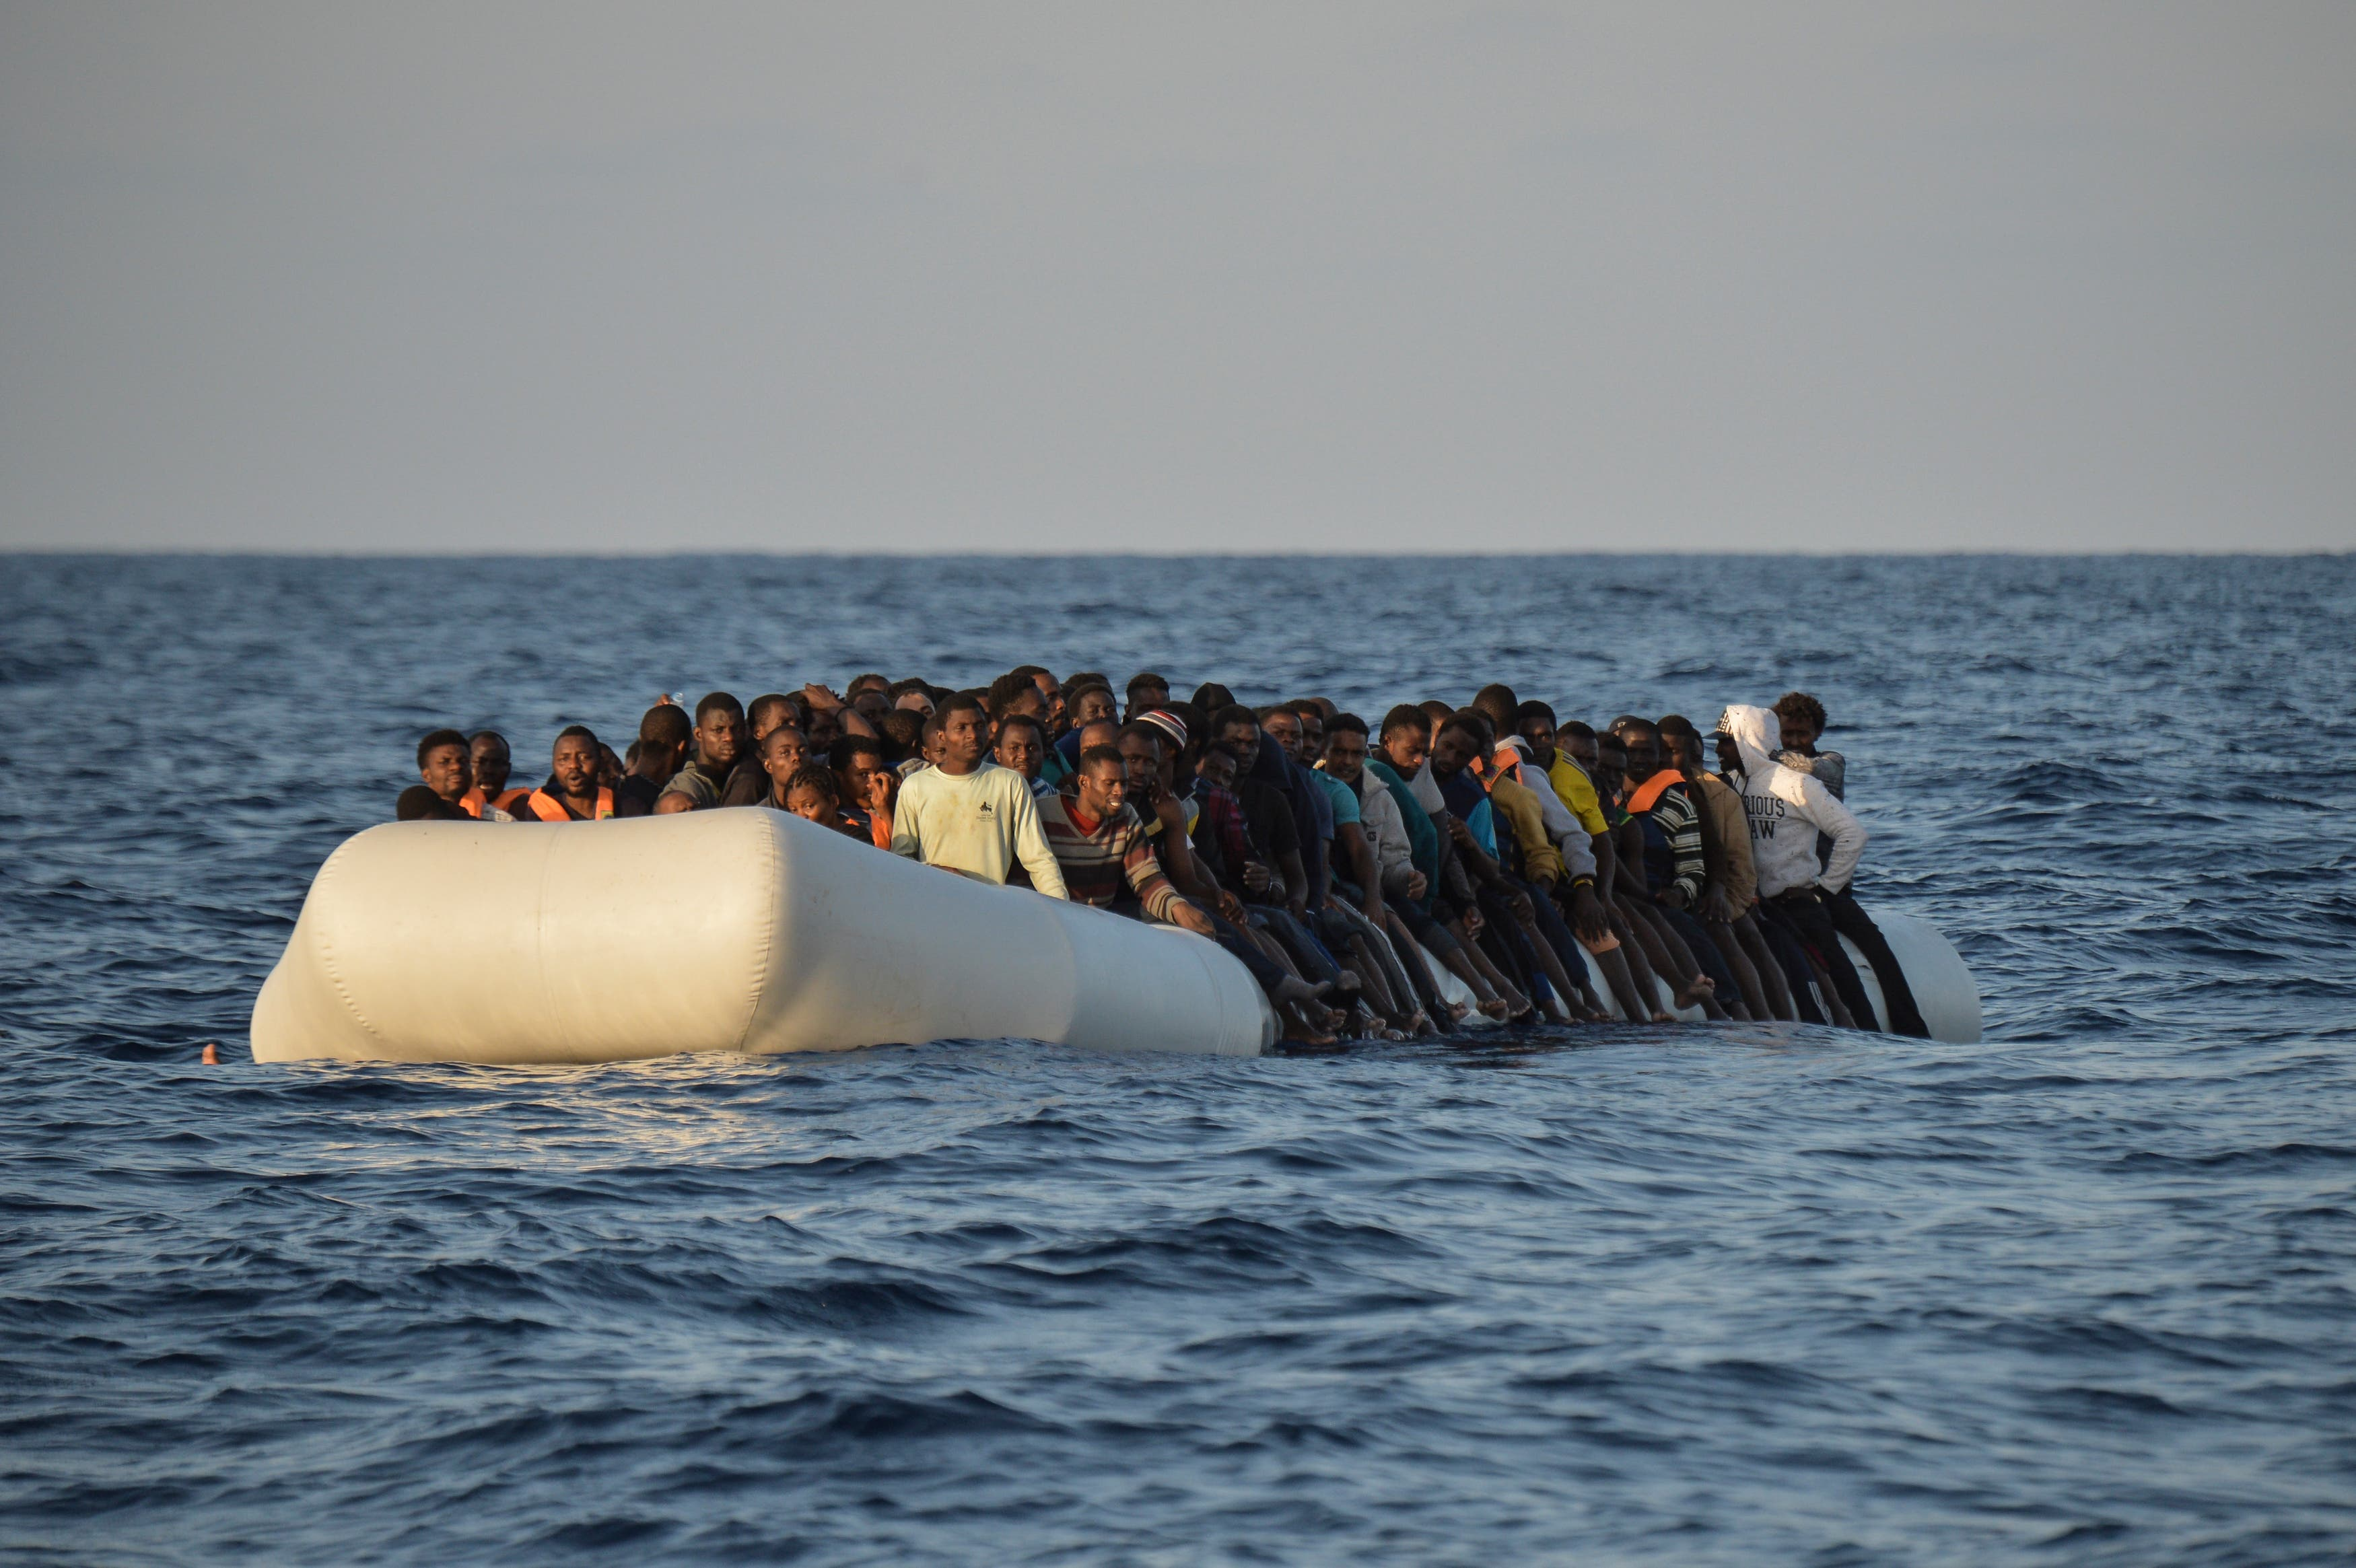 Germany Urges Libya to Cooperate With NGOs on Migrant Rescue Missions